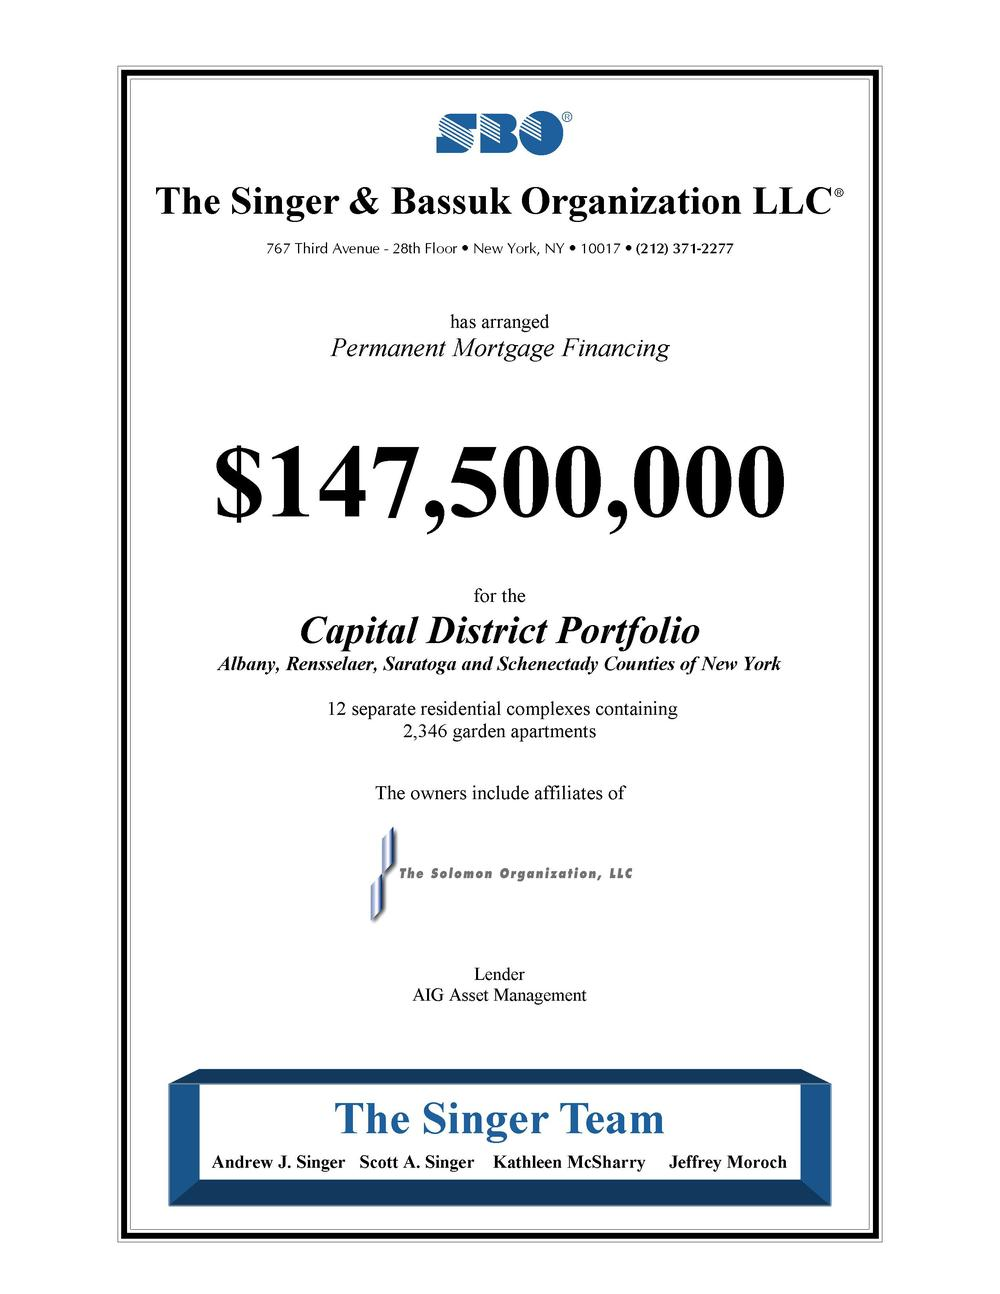 Capital District Portfolio with logo - 2012 refi tombstone Singer Team version 6.jpg